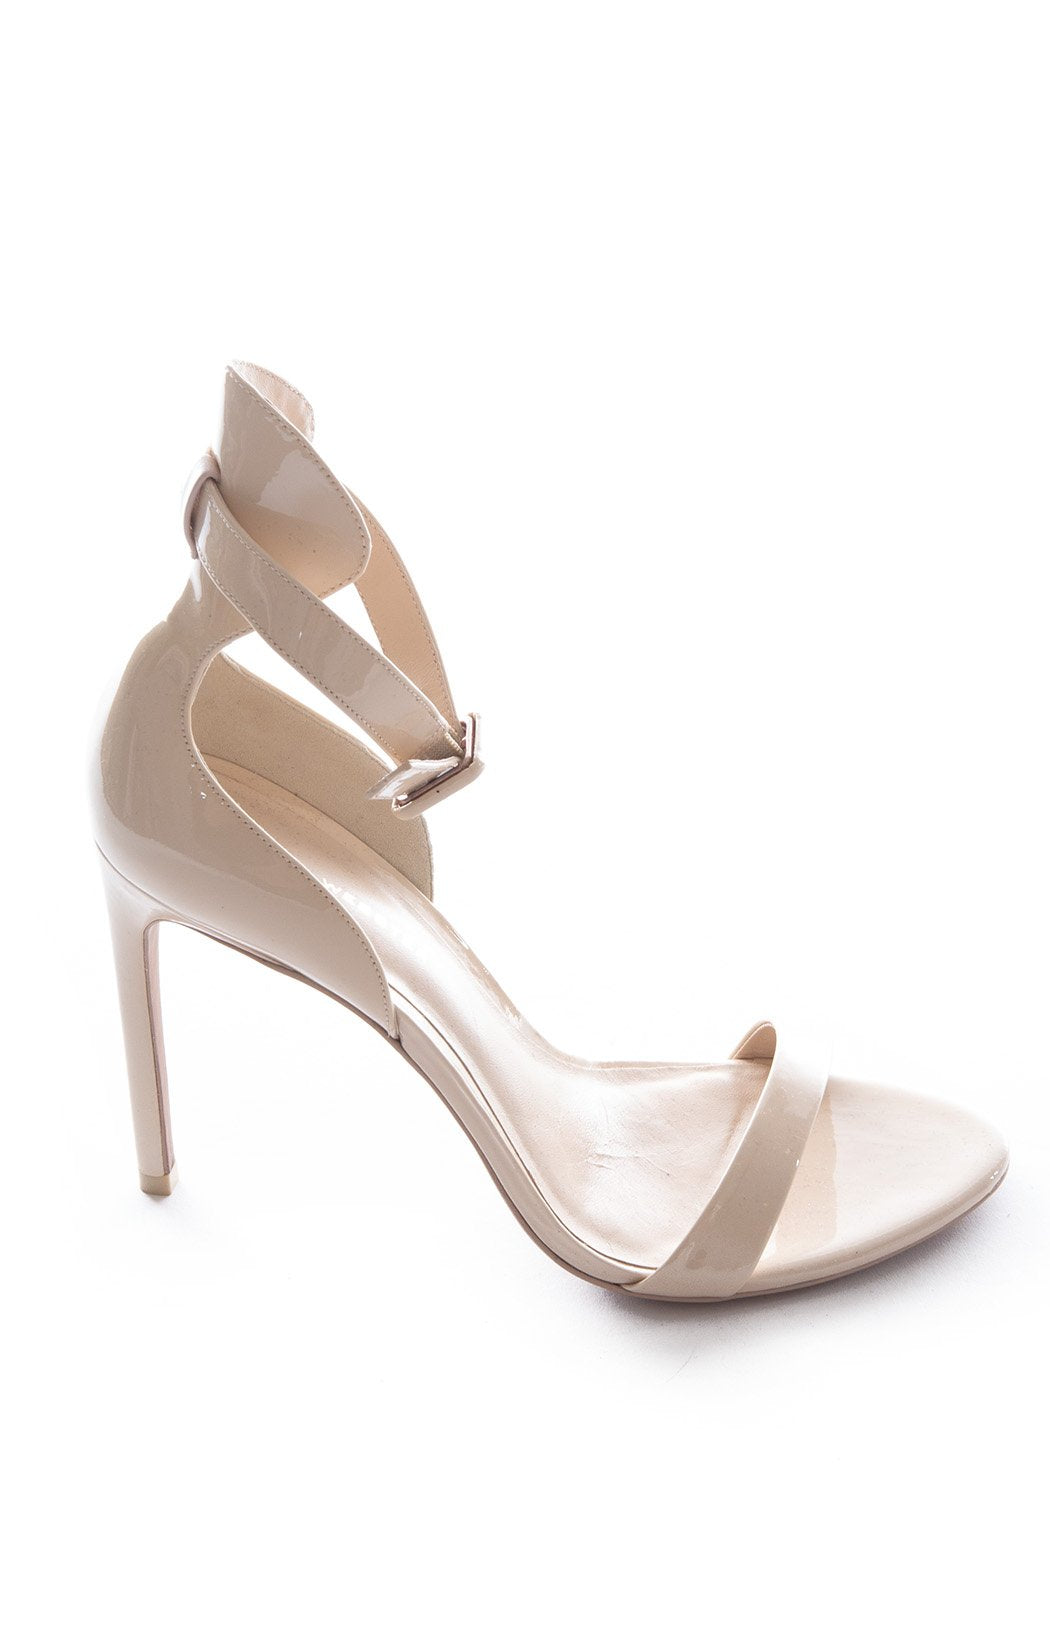 Side view of SOPHIA WEBSTER Sandal